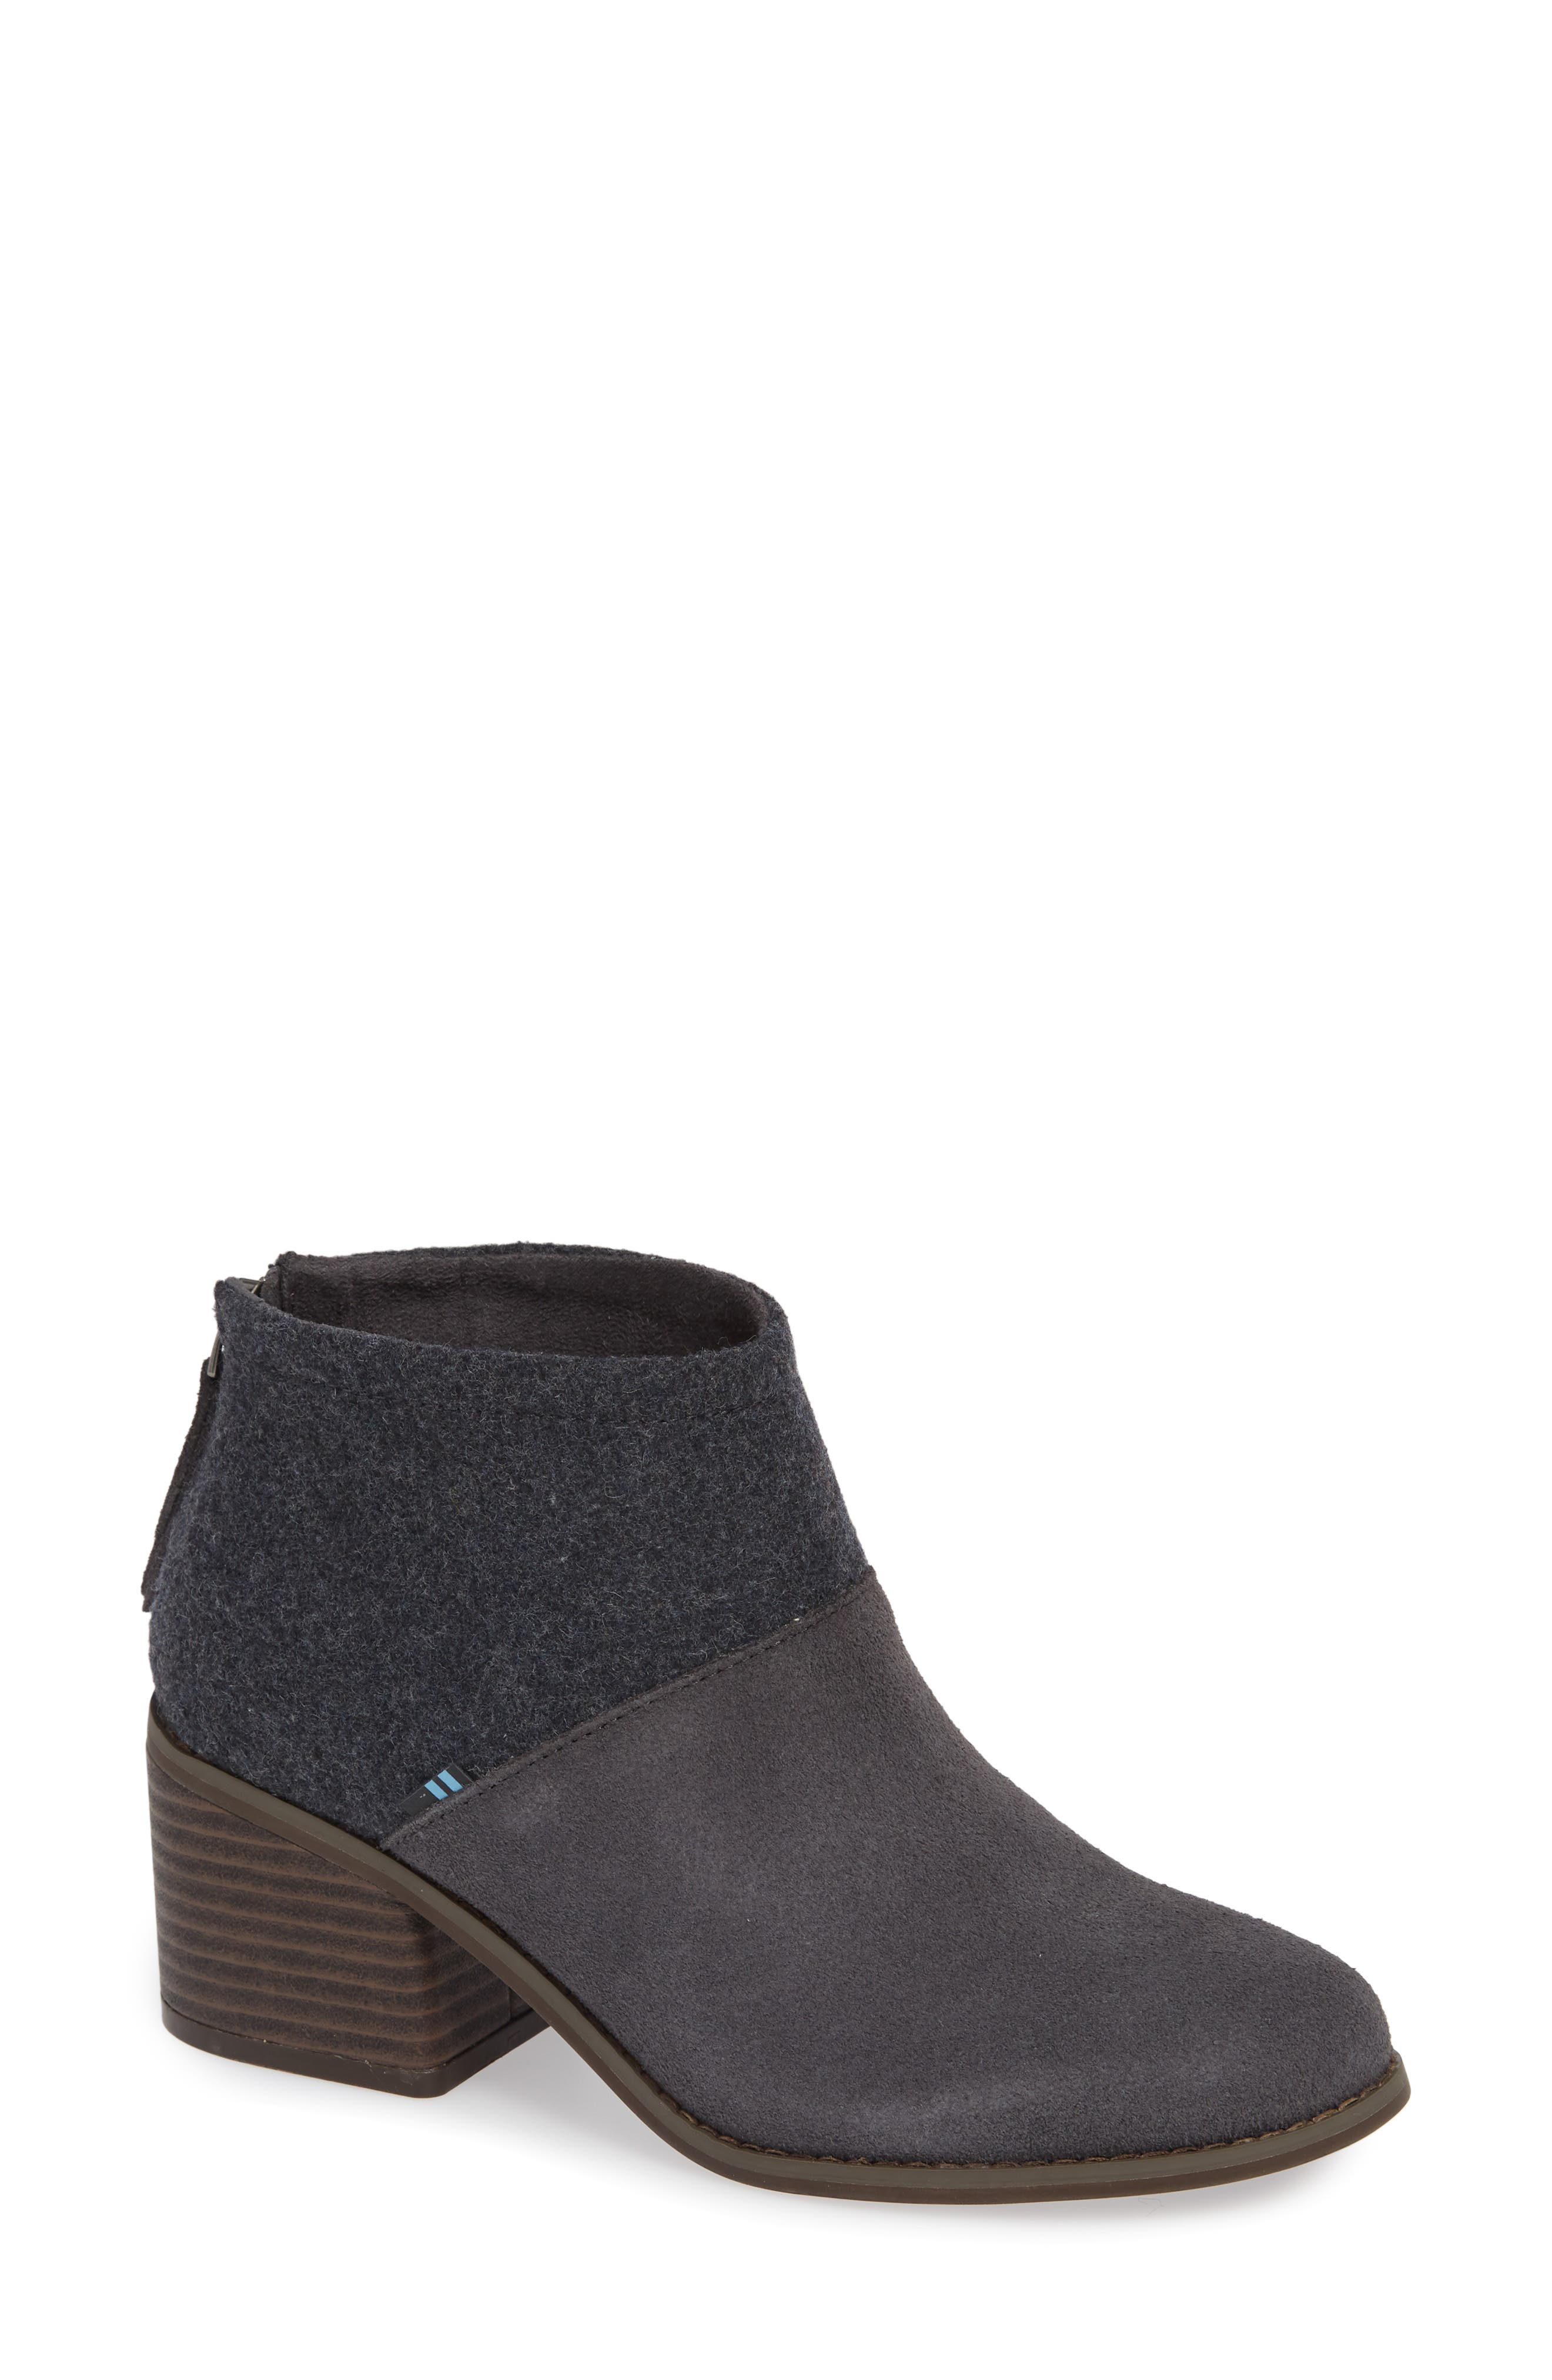 0cf1d1f4507 Grey TOMS Boots for Women